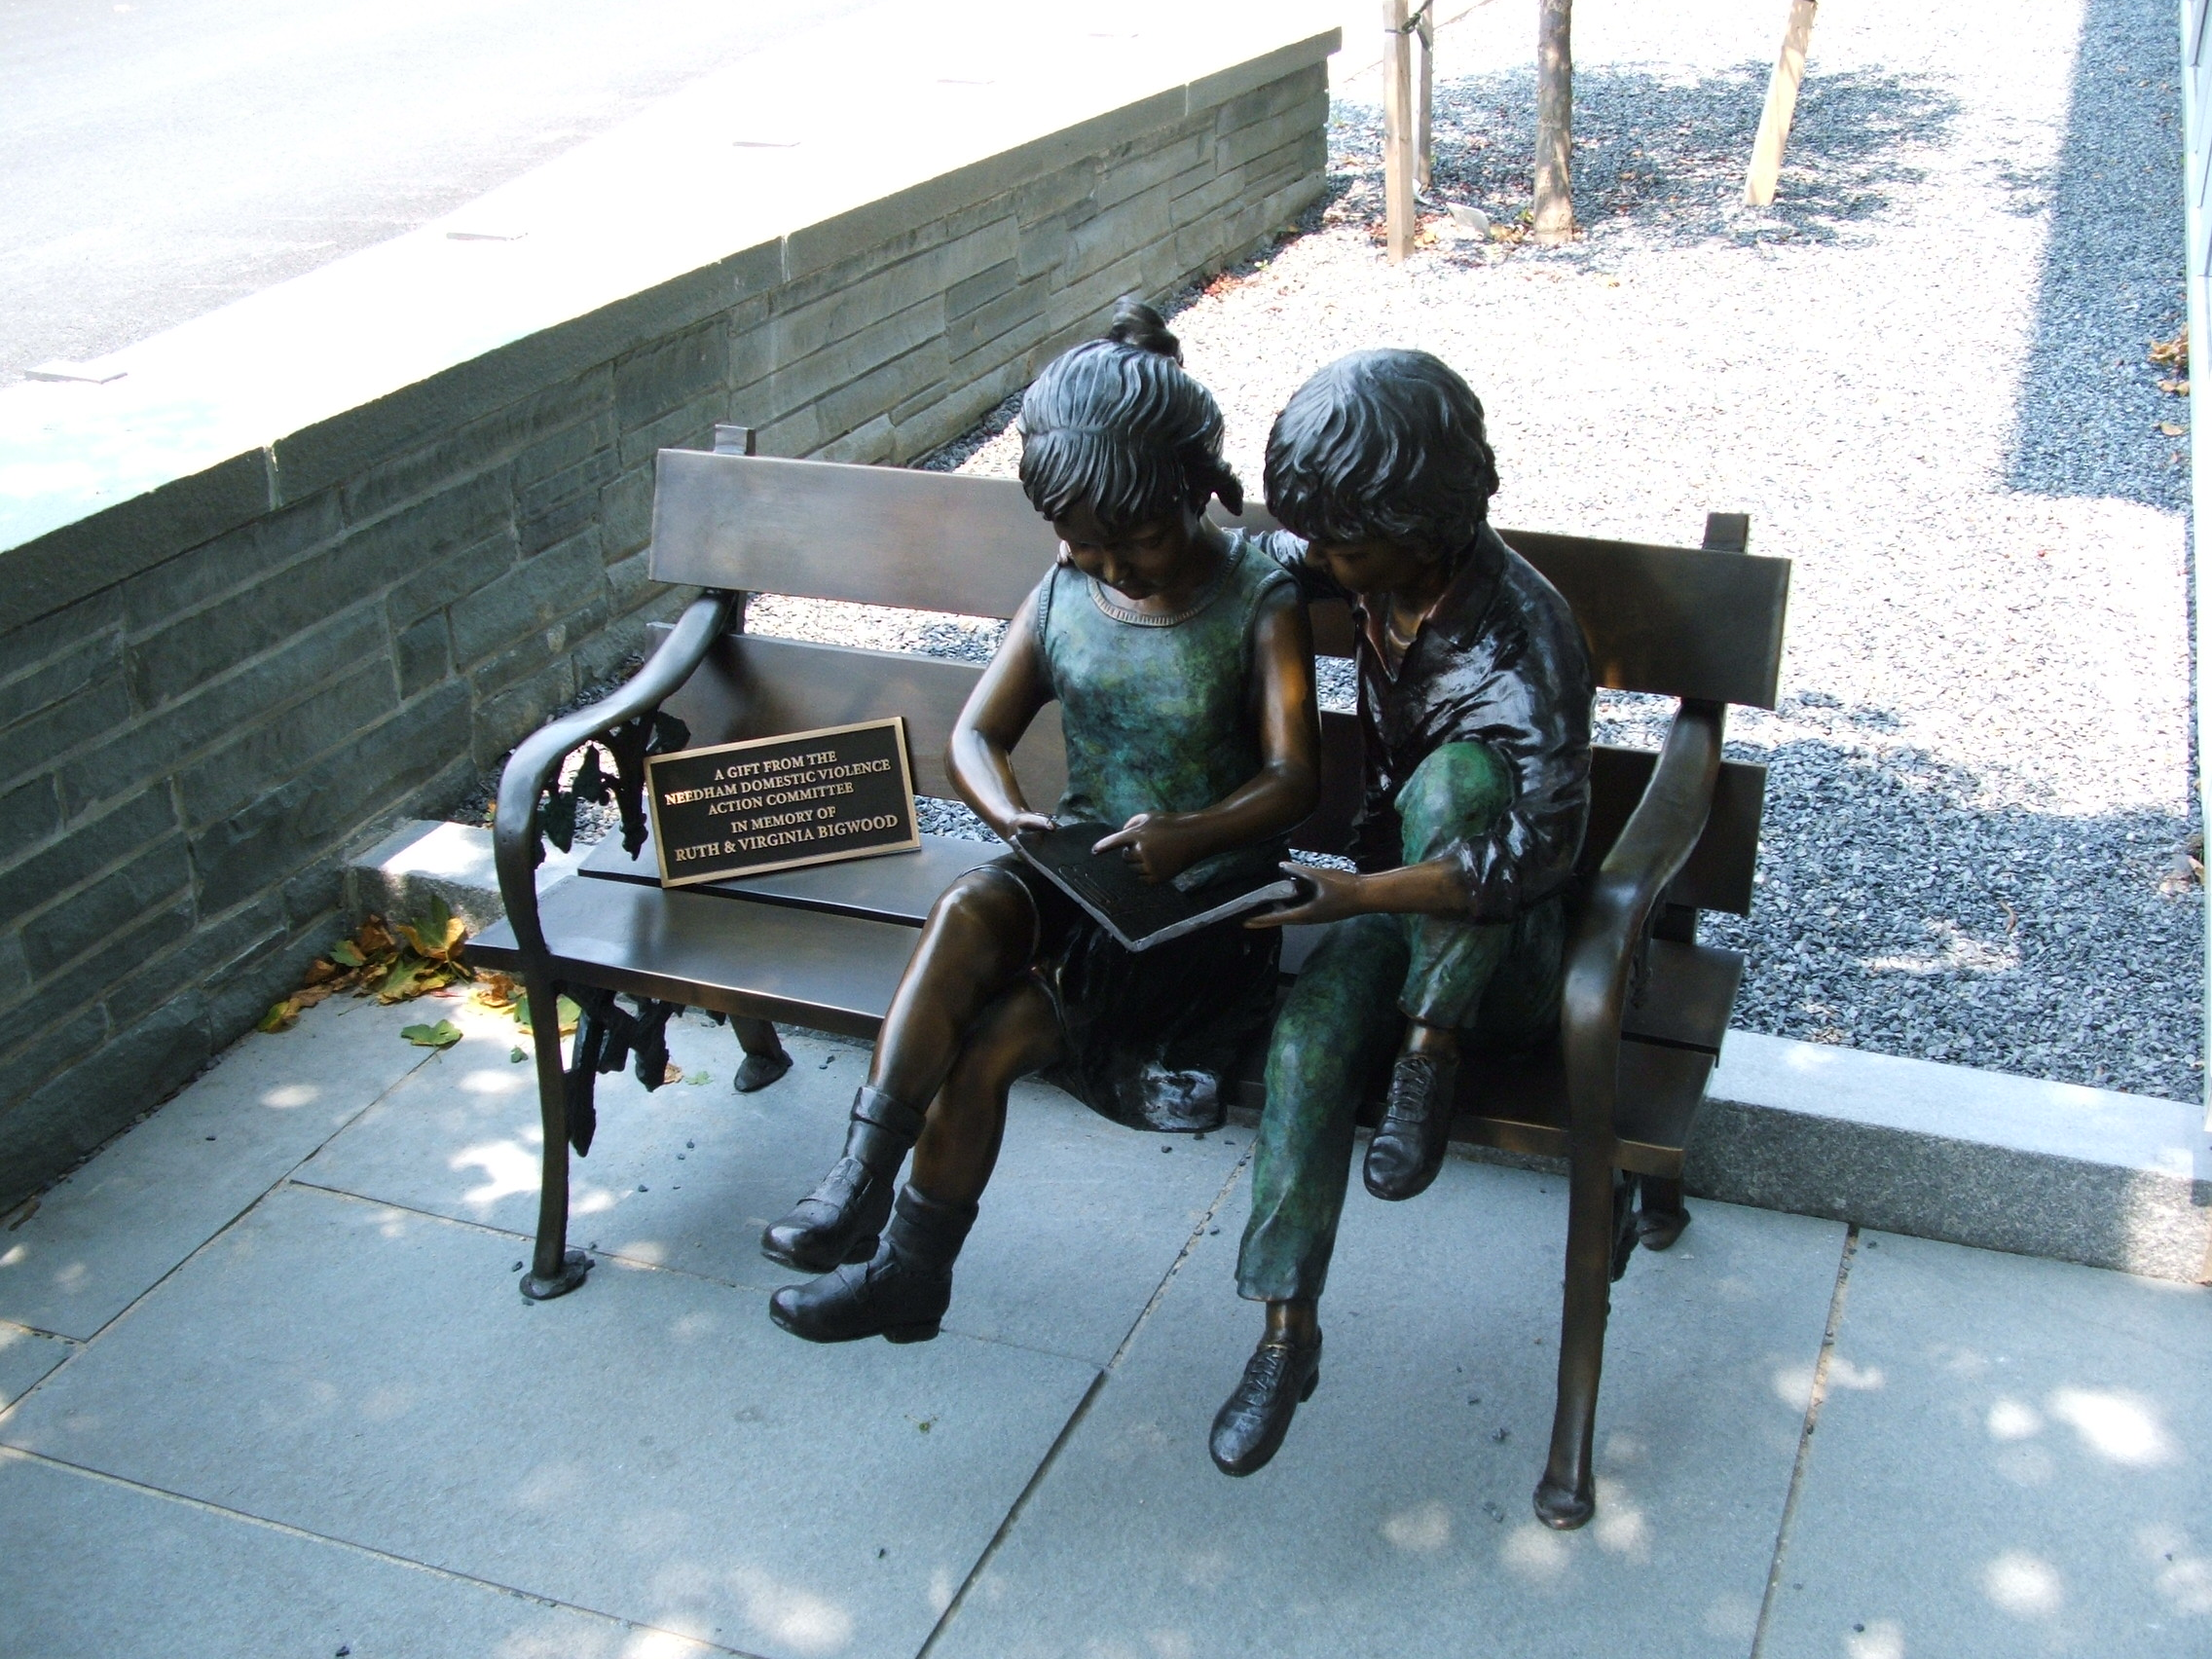 Two Children Reading on a Bench Statue